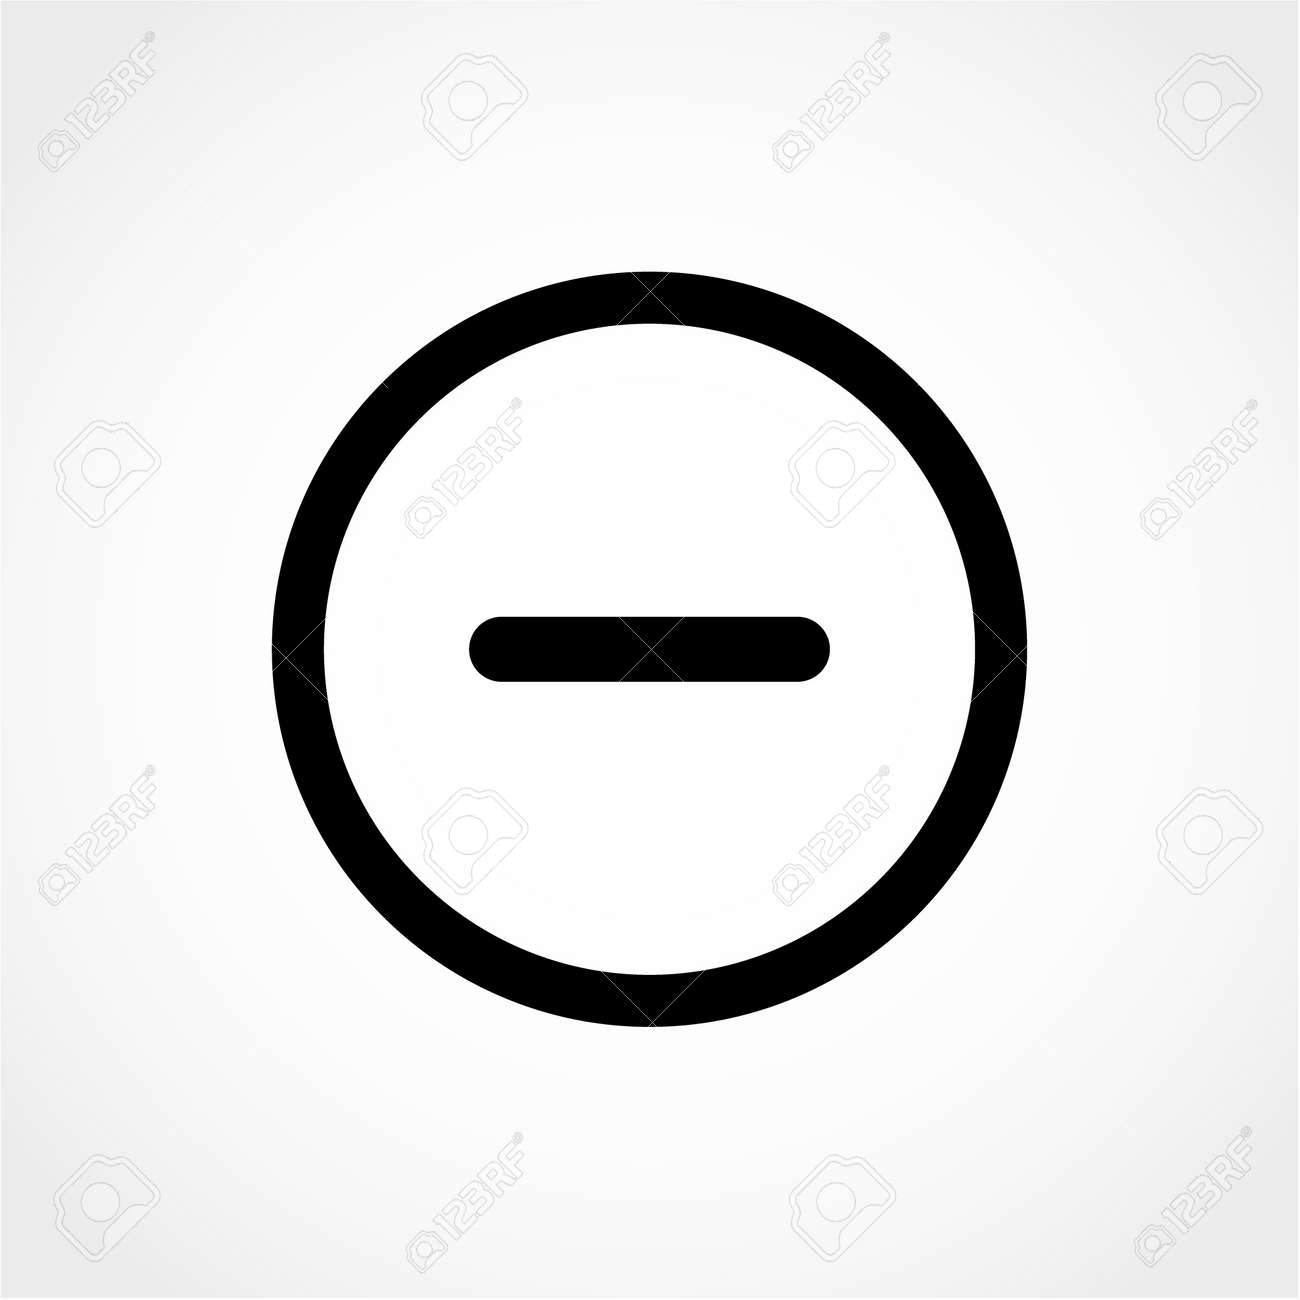 Background image zoom out - Minus Sign Icon Negative Symbol Zoom Out Circles Icon Isolated On White Background